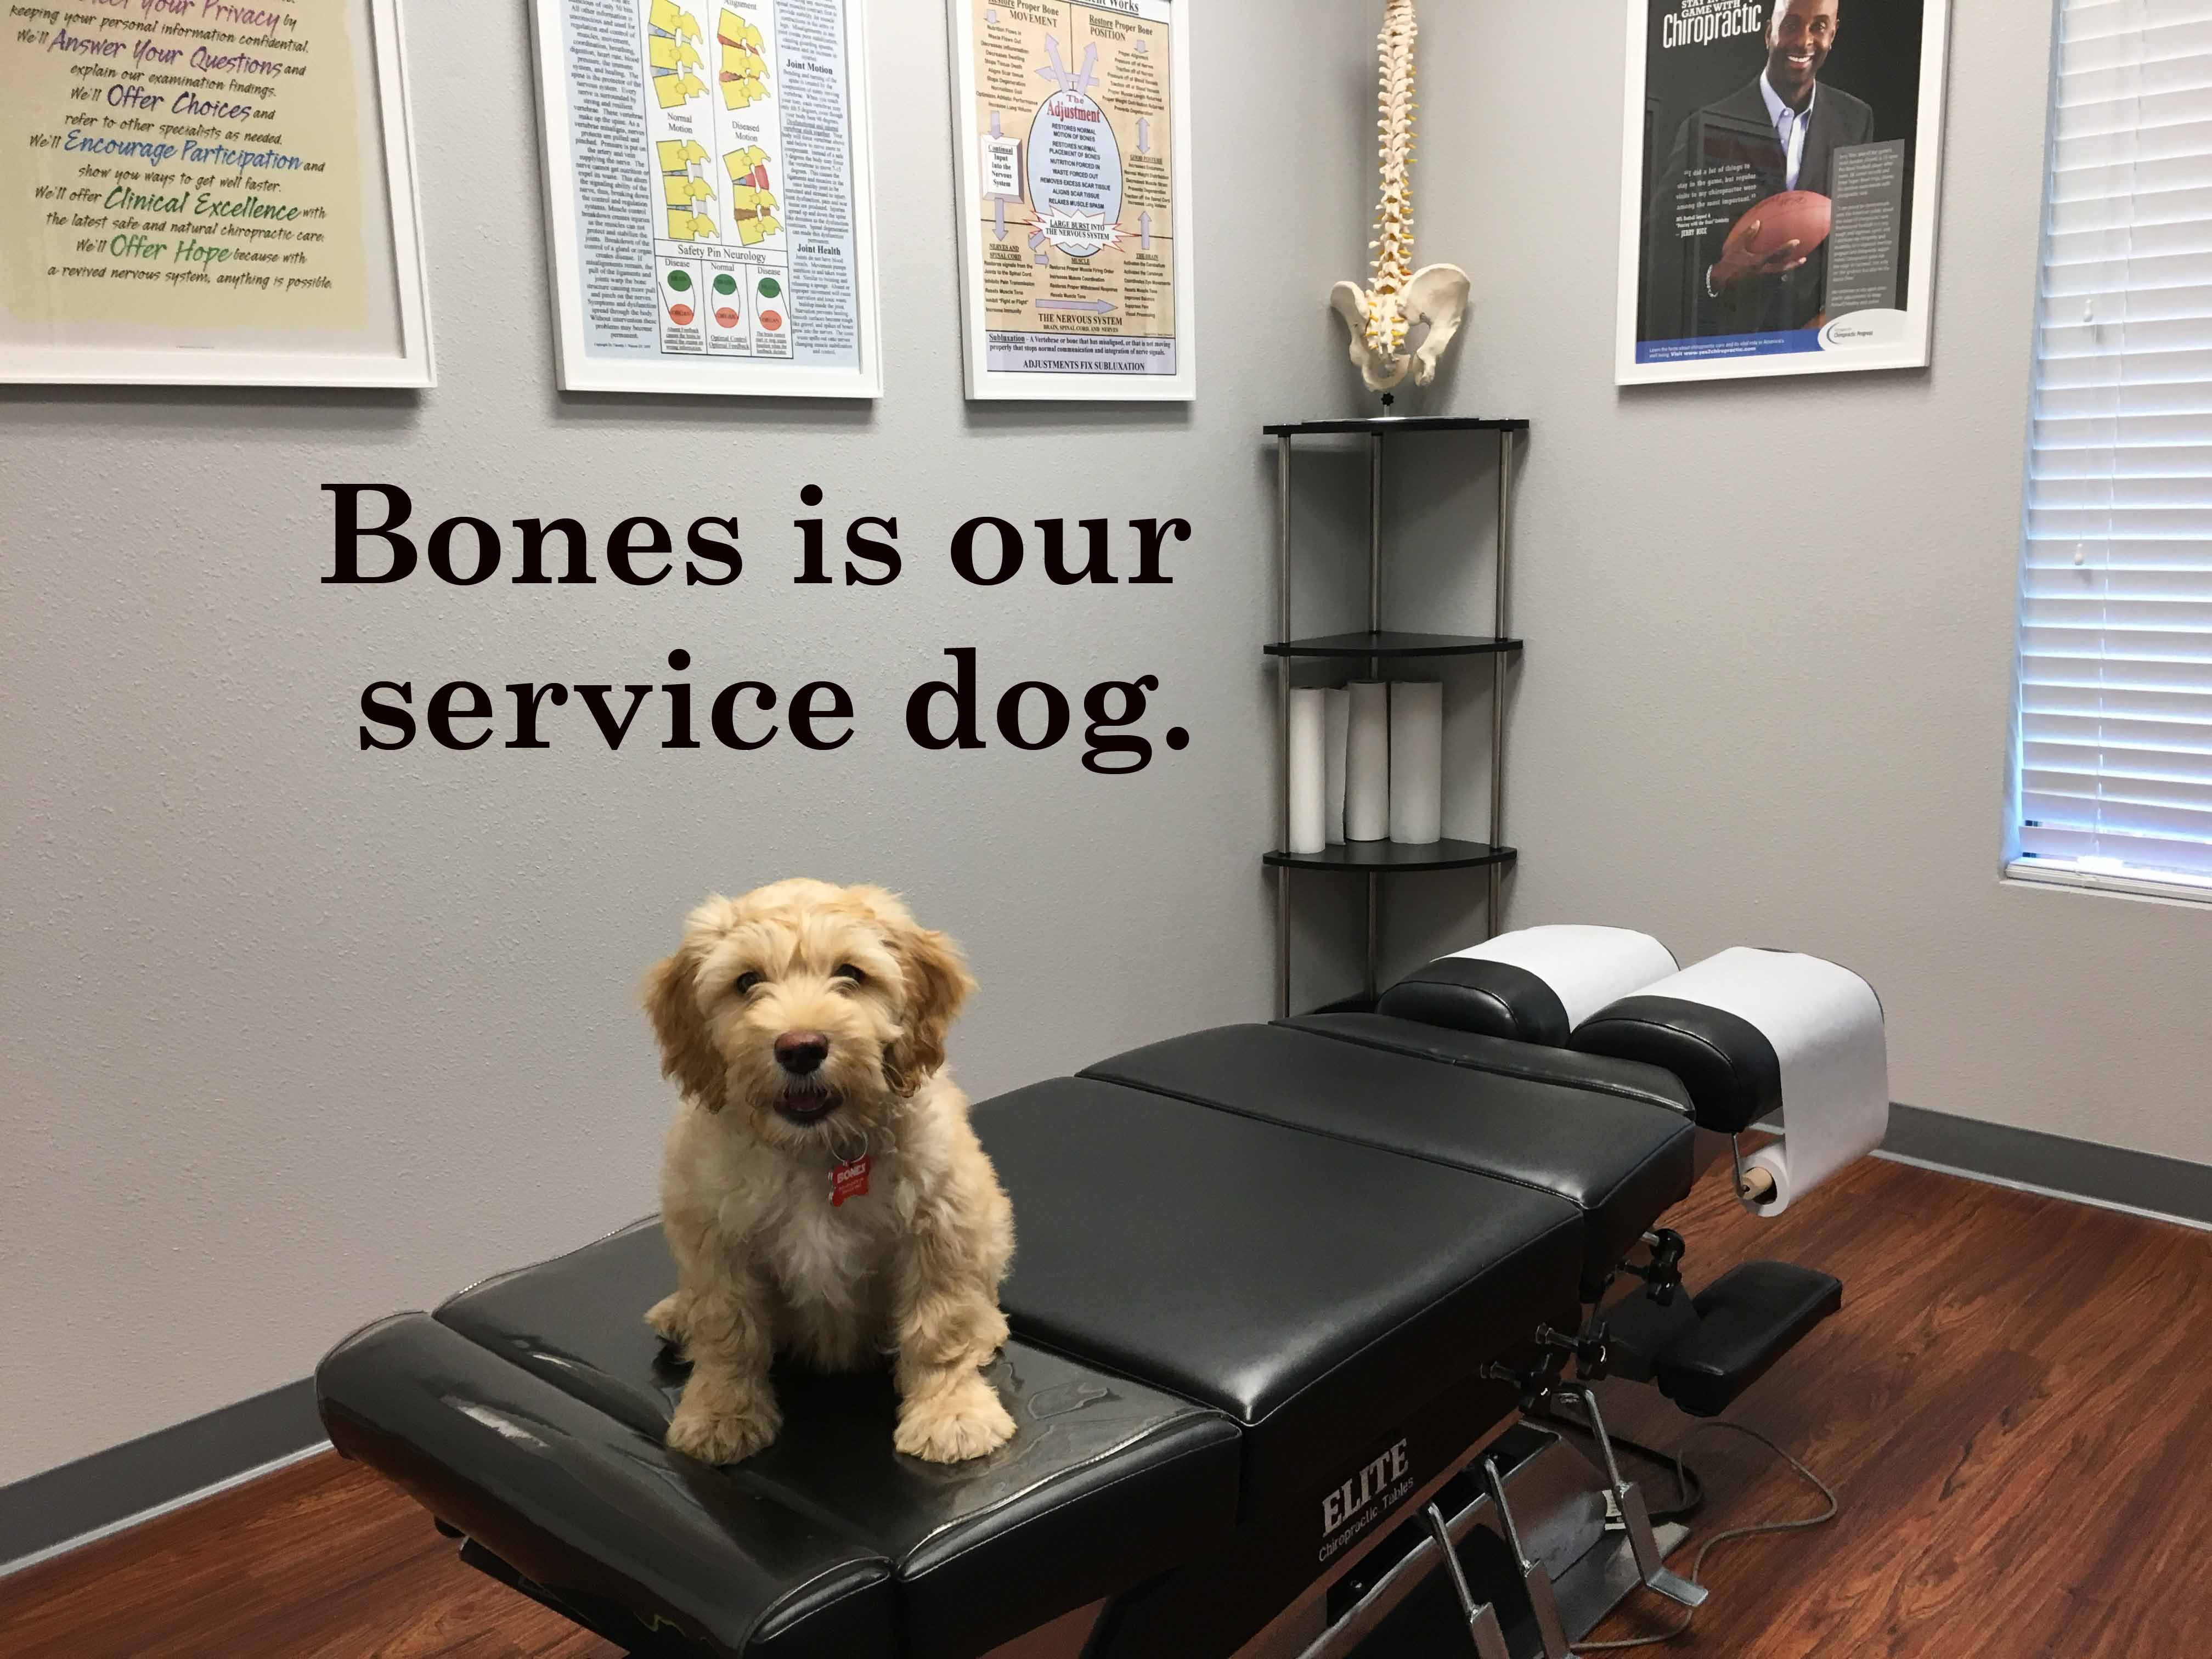 Bones is our service dog at Weimer Chiropractic,